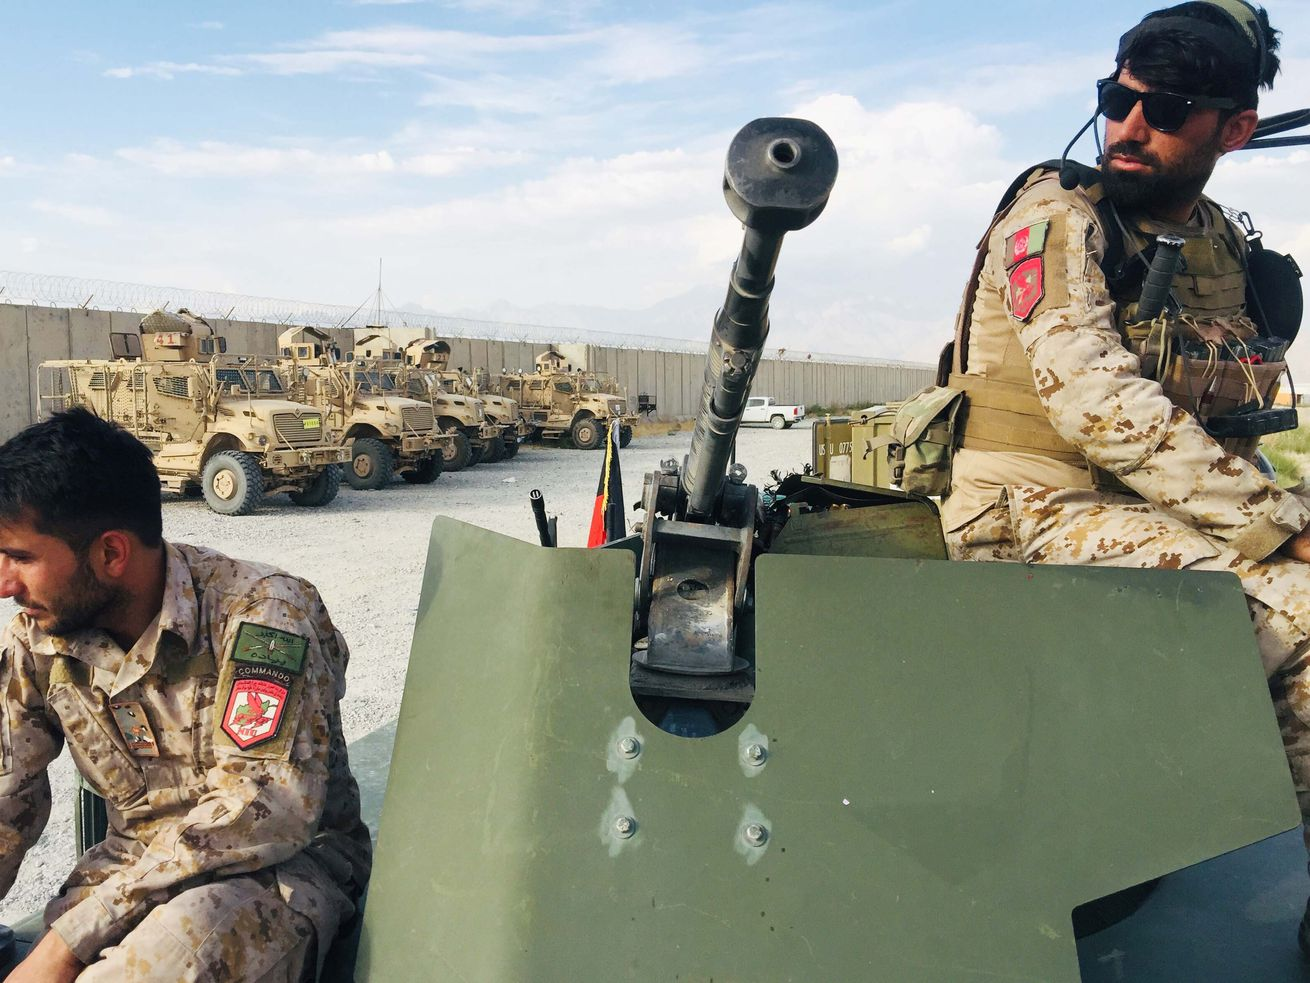 Two soldiers sit on an armored vehicle.